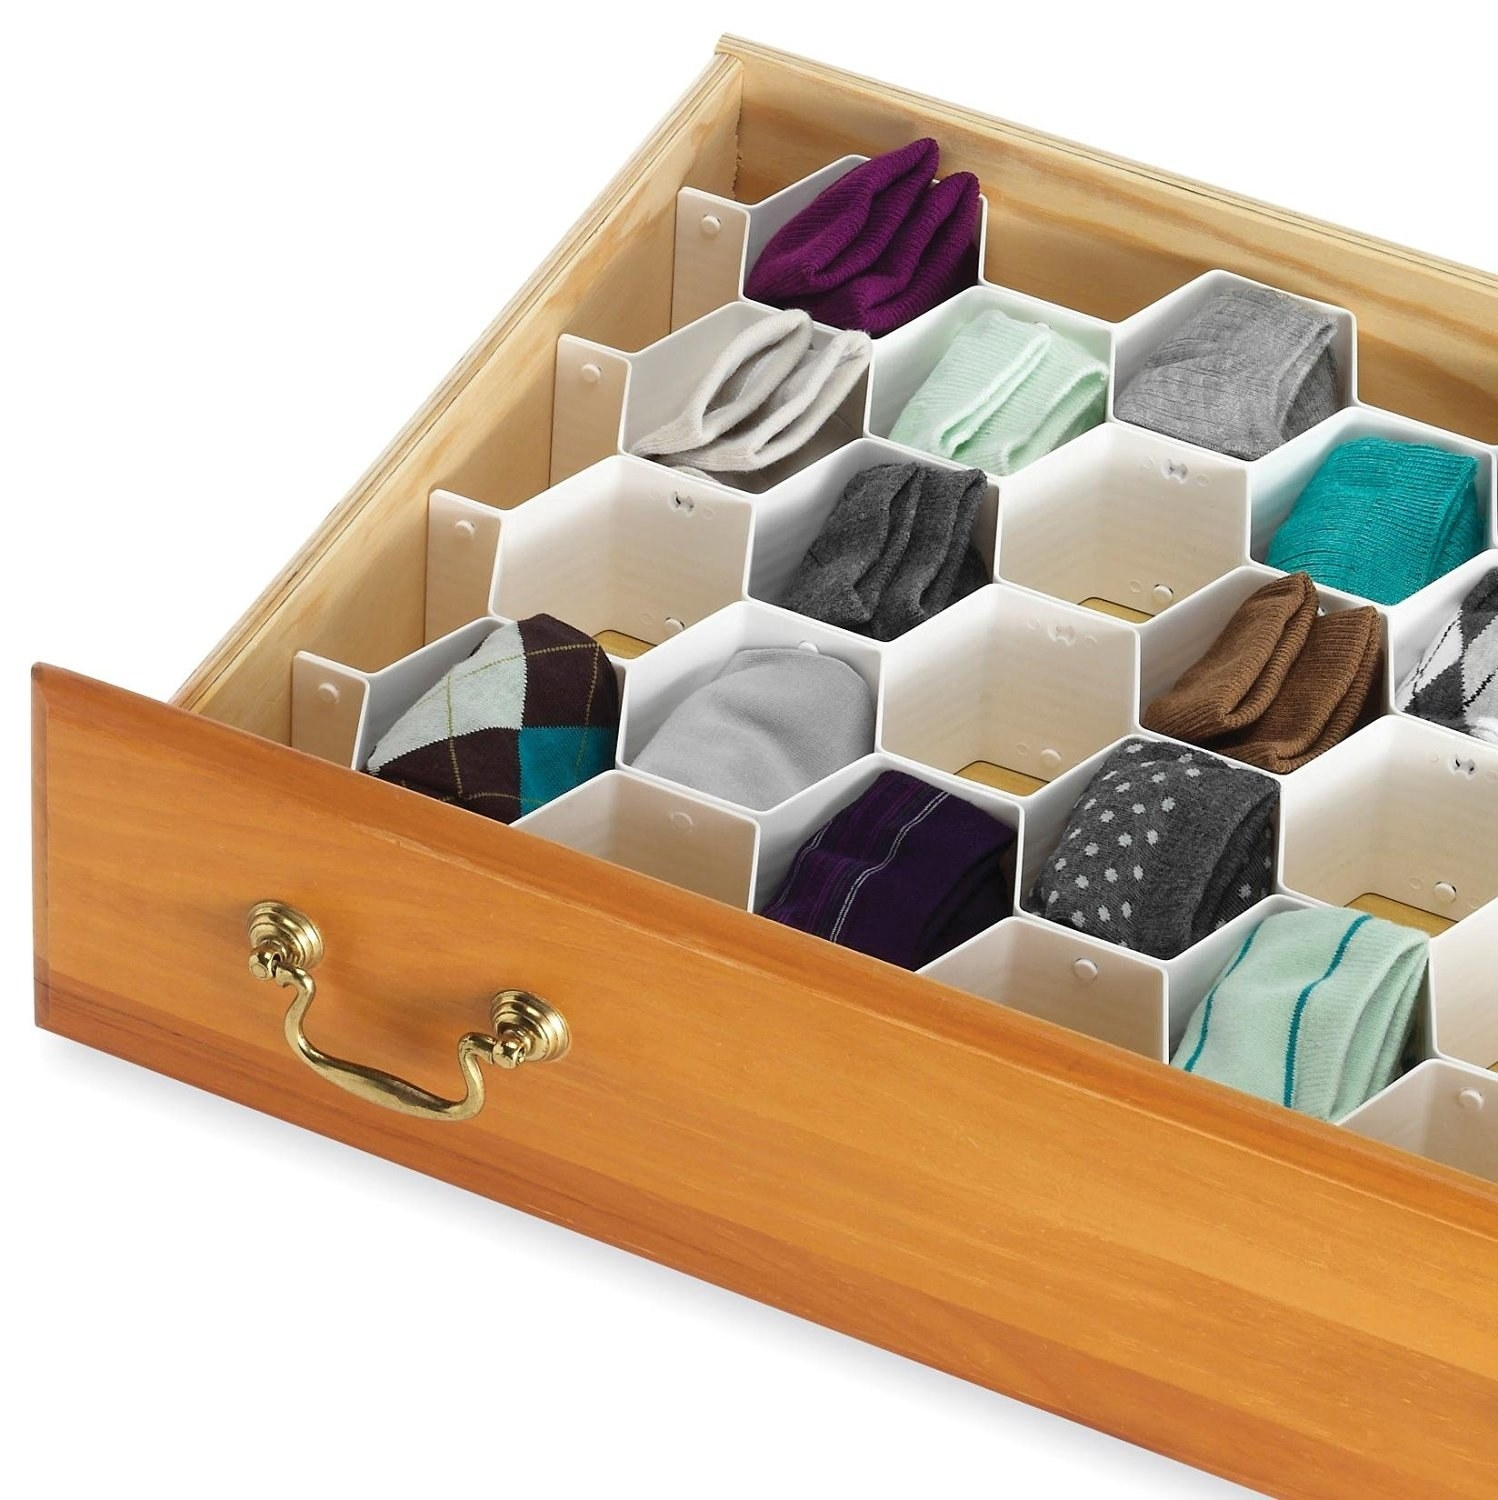 The honeycomb inserts placed inside a drawer.